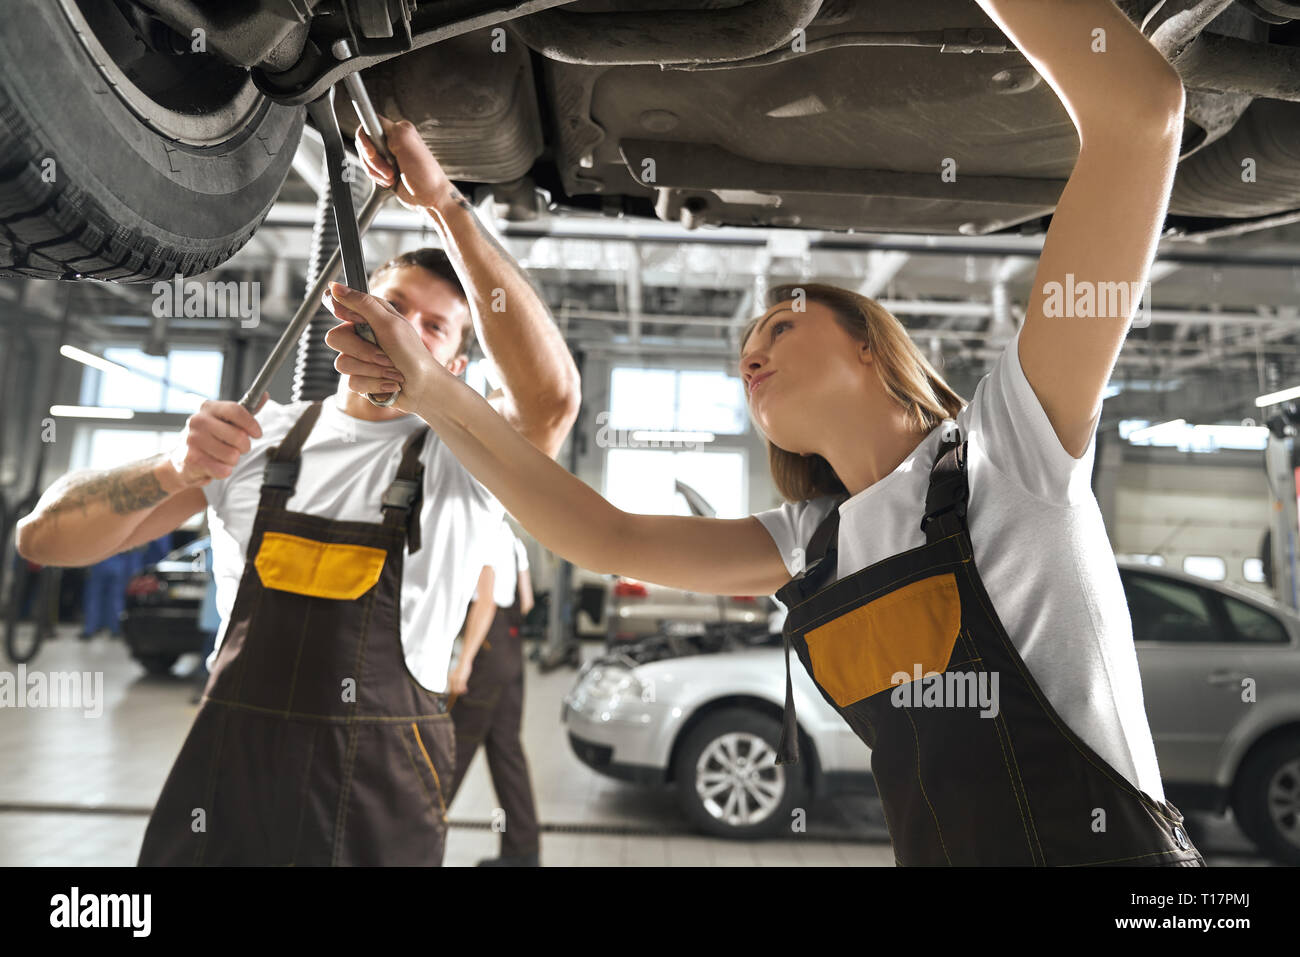 Concentrated young woman and man repairing auto in autoservice station. Professional female and male mechanics holding tools, wrenches and fixing undercarriage of vehicle. - Stock Image